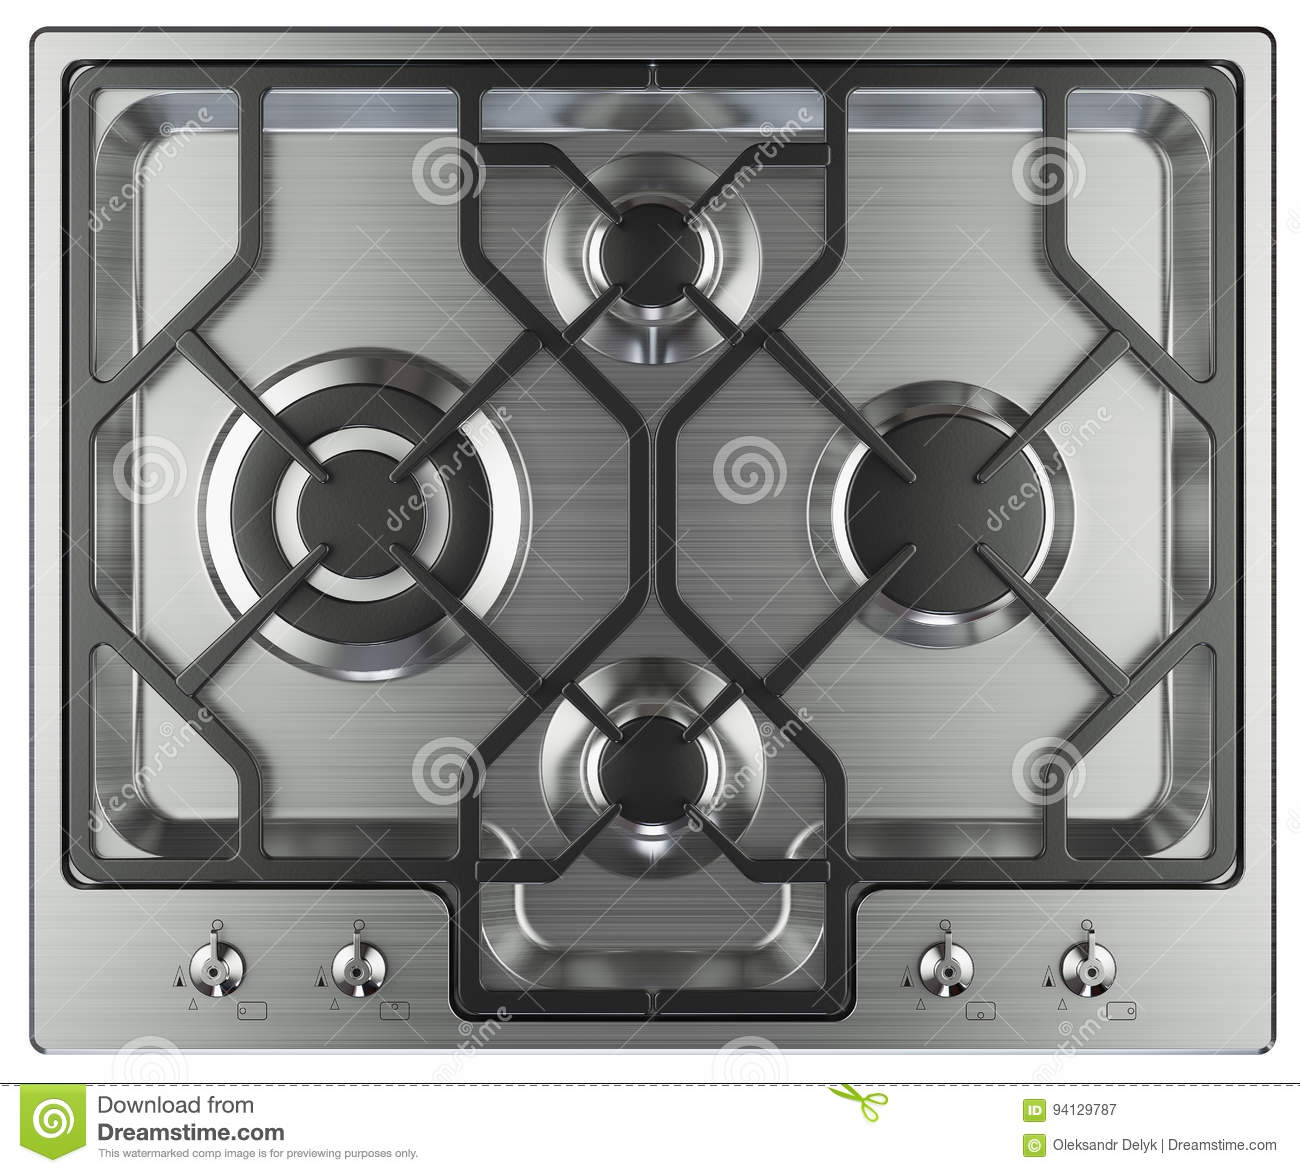 Kitchen Stove Top View Stock Illustration - Image: 94129787